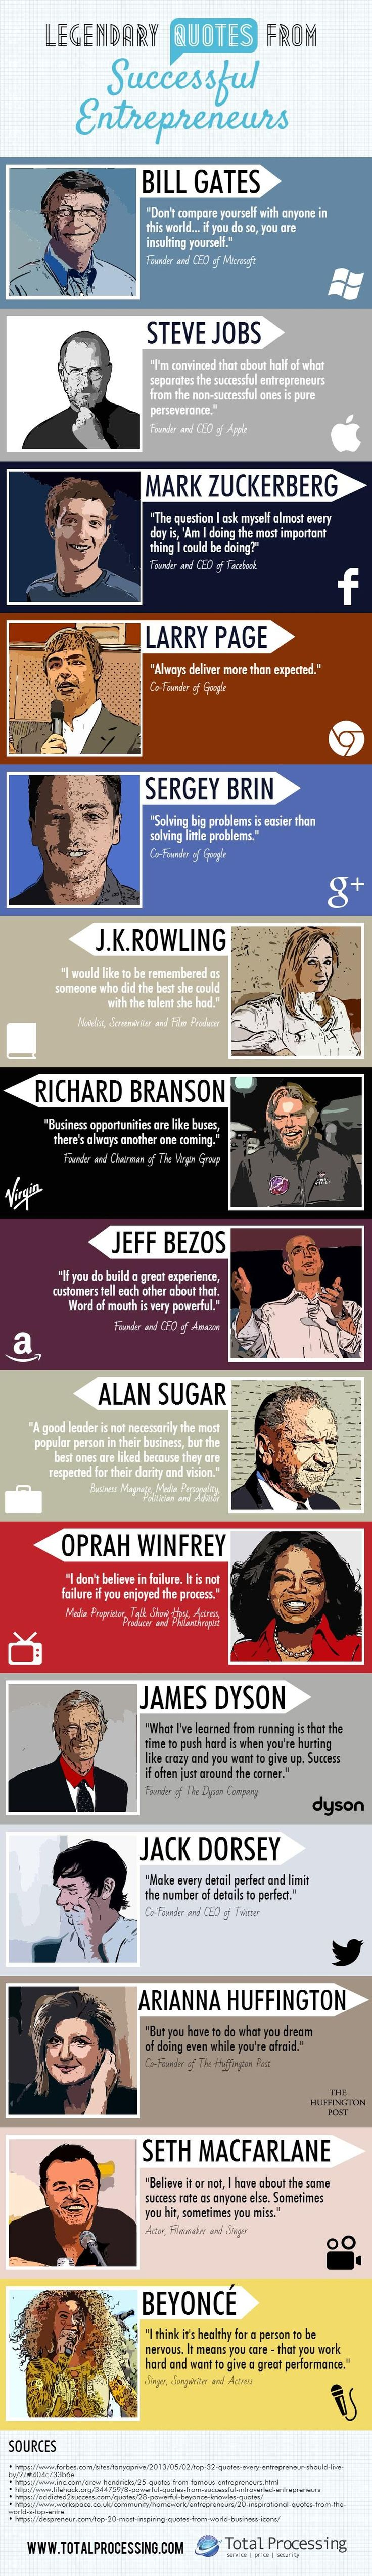 15 Motivational Quotes from Successful Entrepreneurs #Infographic #Startup